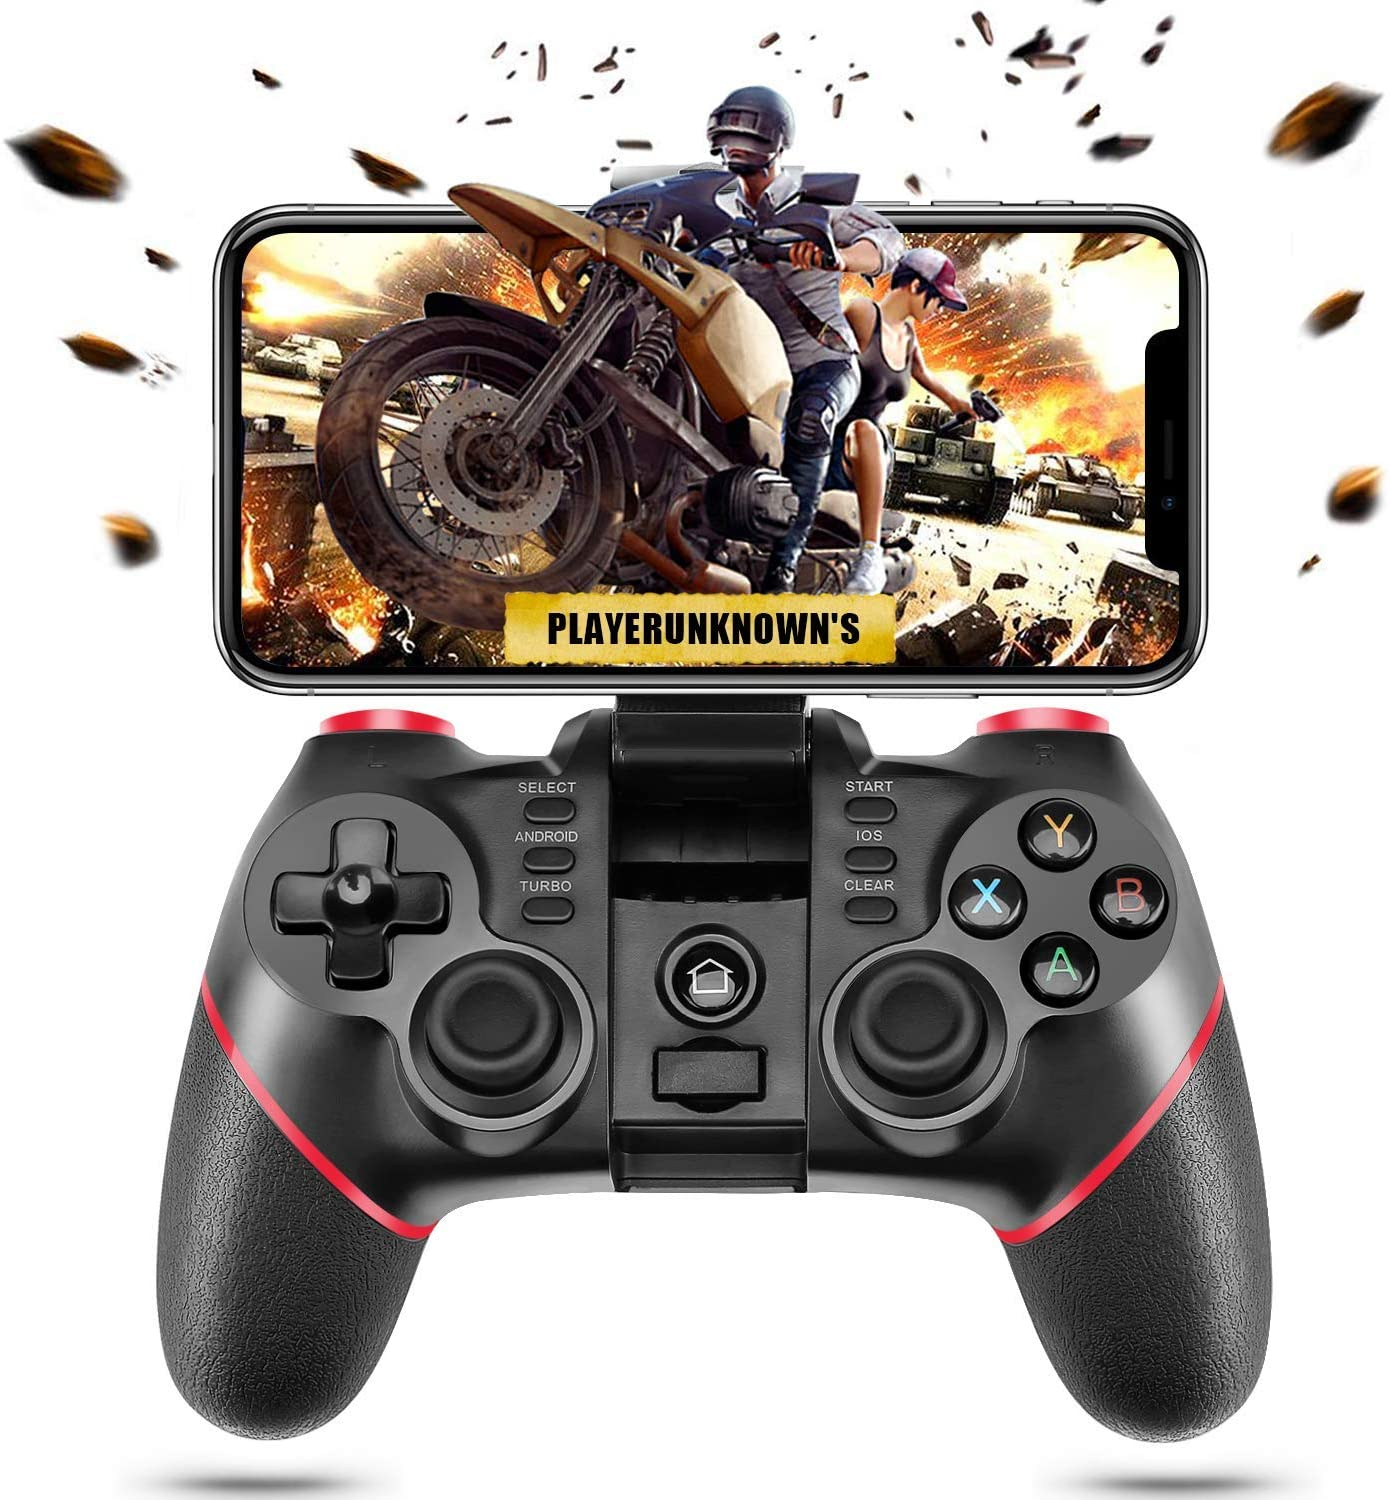 ACGEARY Wireless Bluetooth Android Game Controller Mobile Gaming Controller Gamepad Joystick Compatible for iOS/Android Phone/PC Windows/Tablet/Smart TV/TV Box/ PS3 (Renewed)